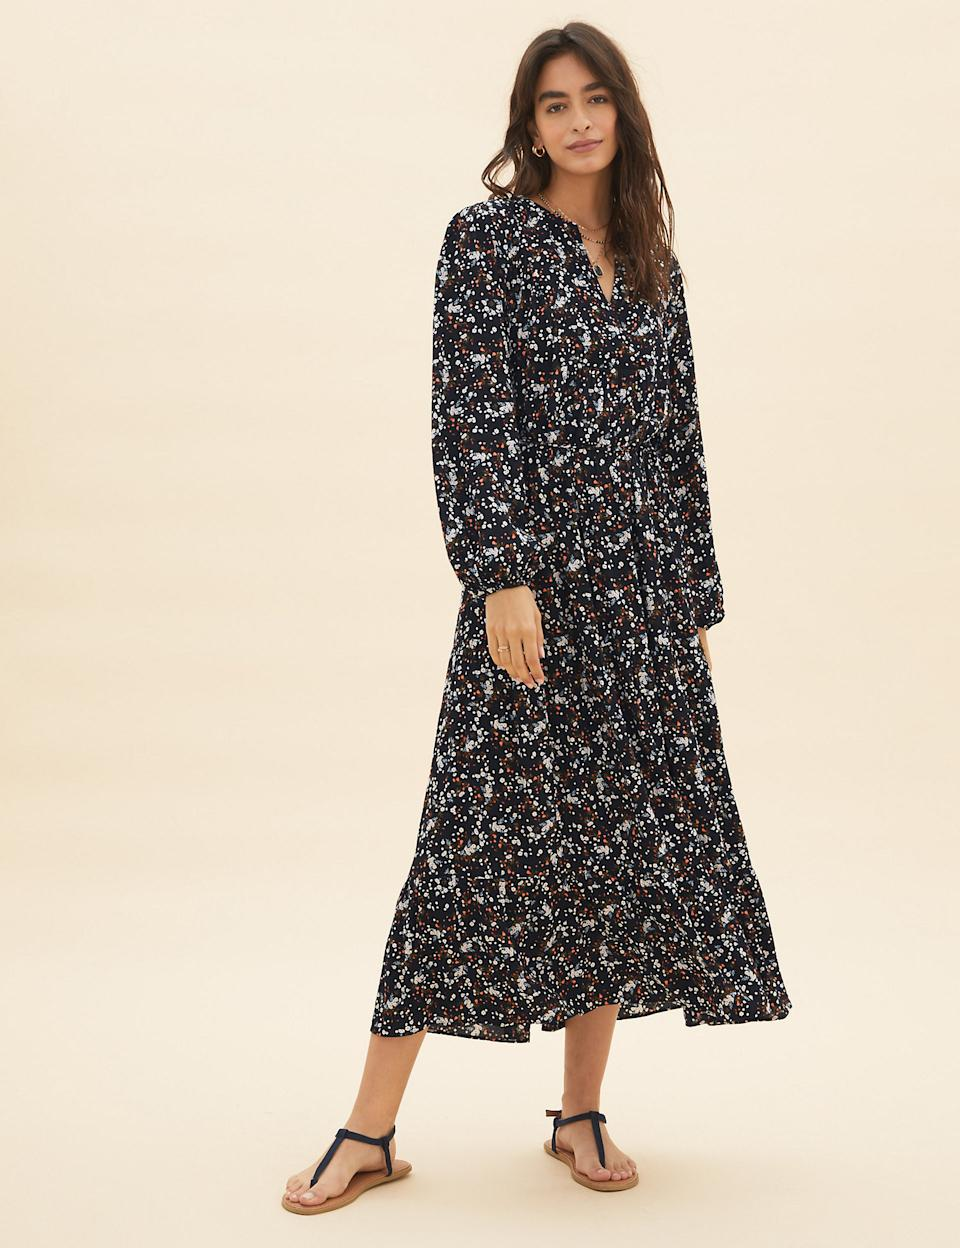 Whether you dress it with sandals for the summer or boots in the winter, it's bound to see you through all year round. (Marks & Spencer)